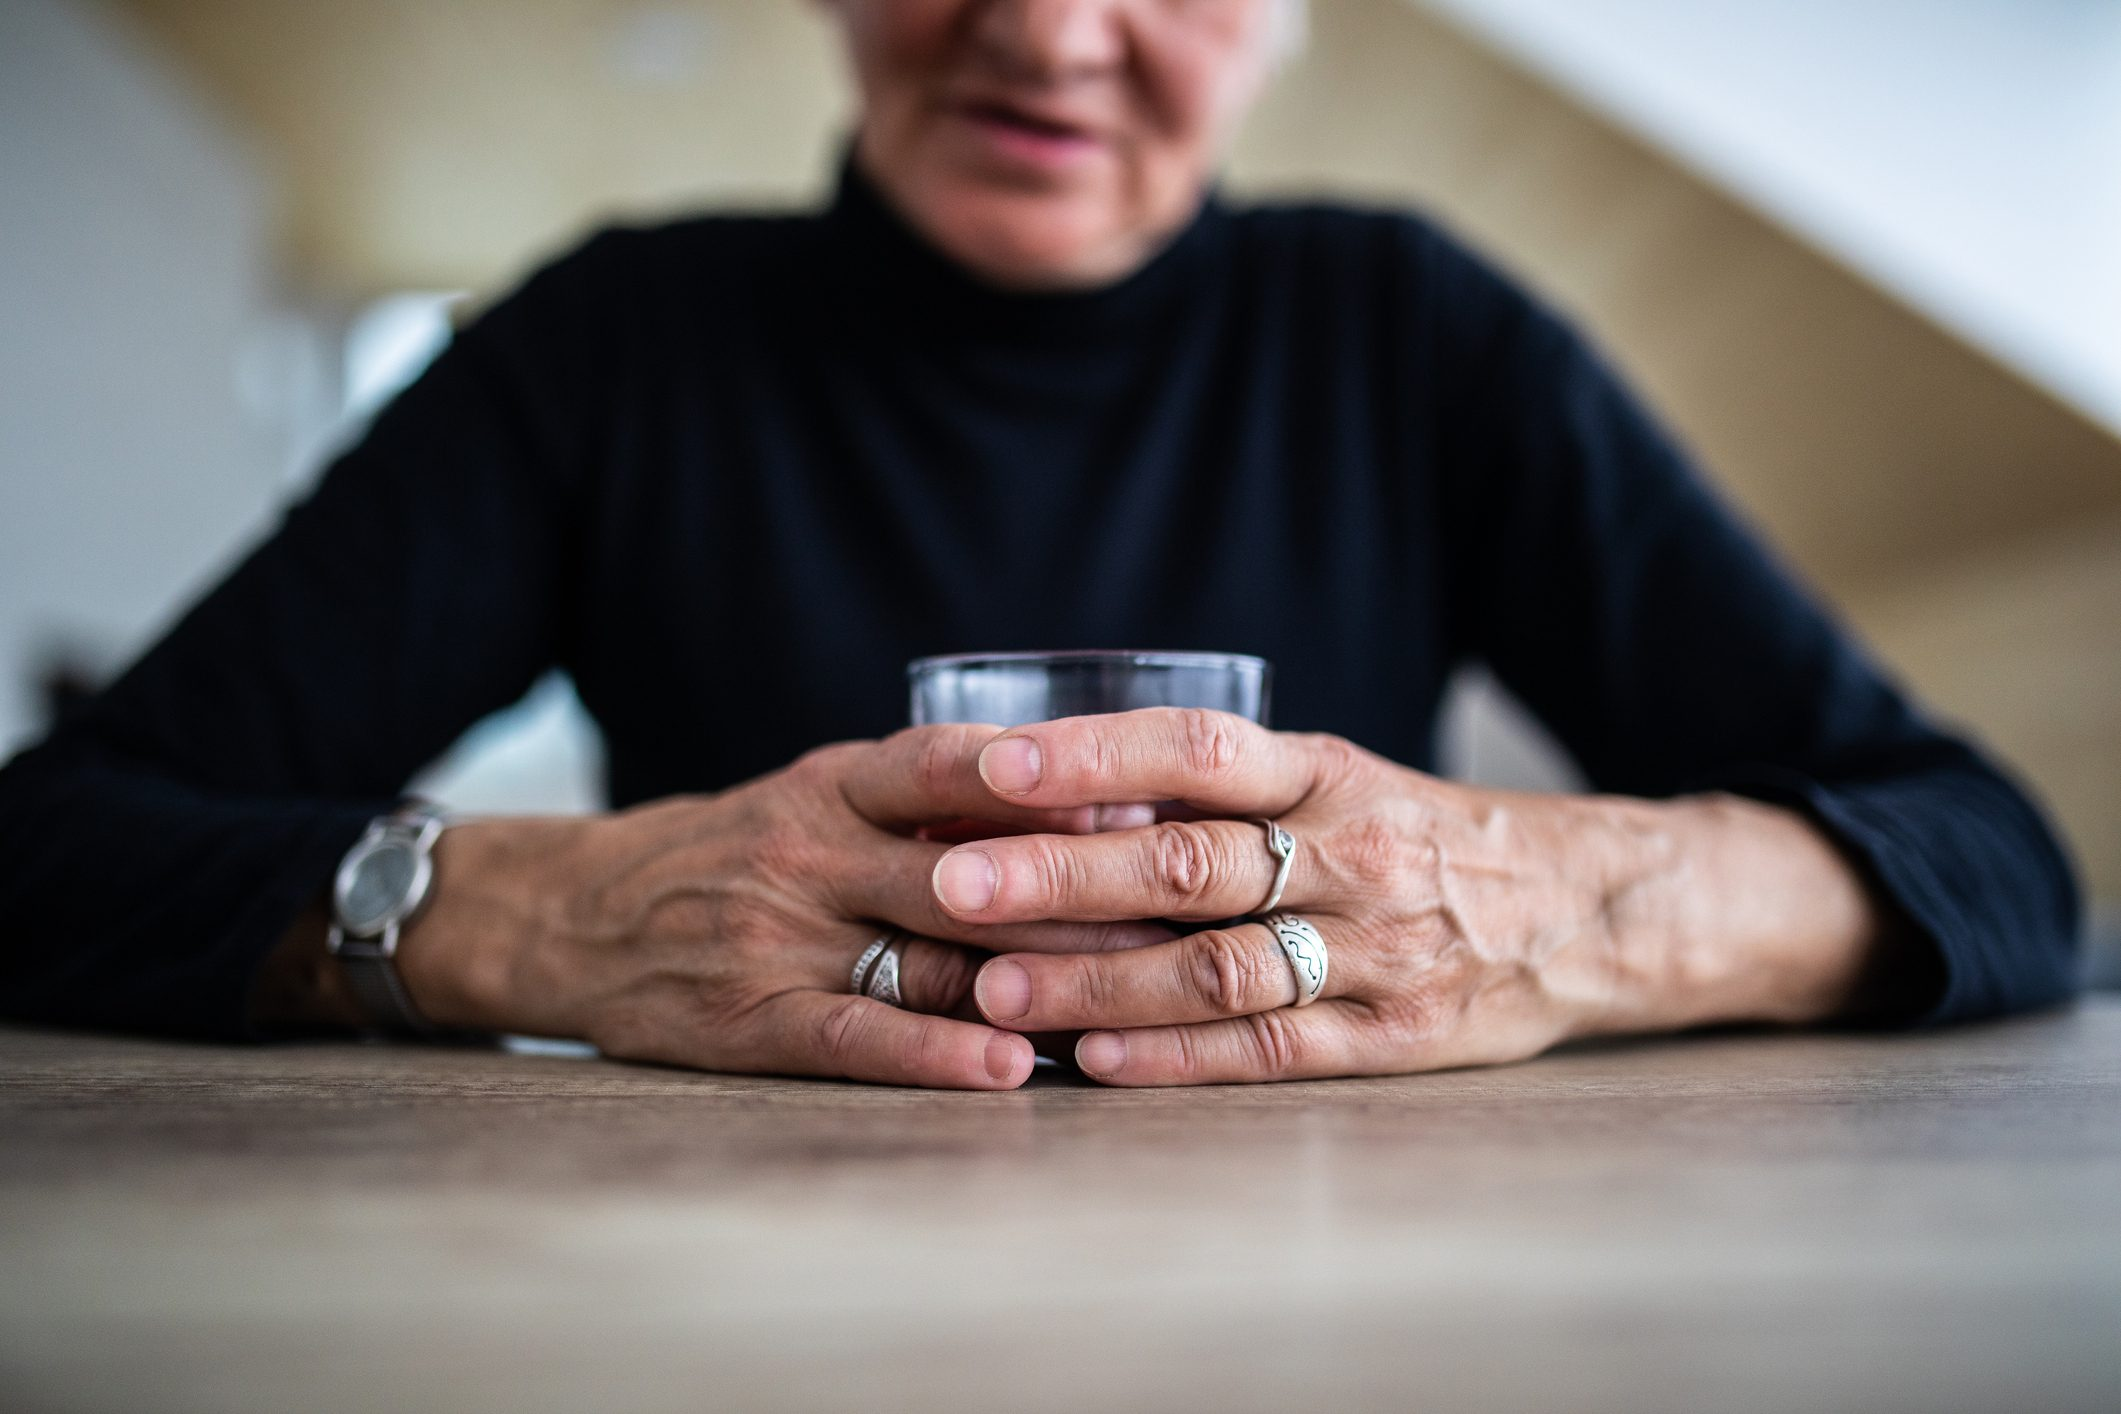 older woman struggling with alcohol addiction